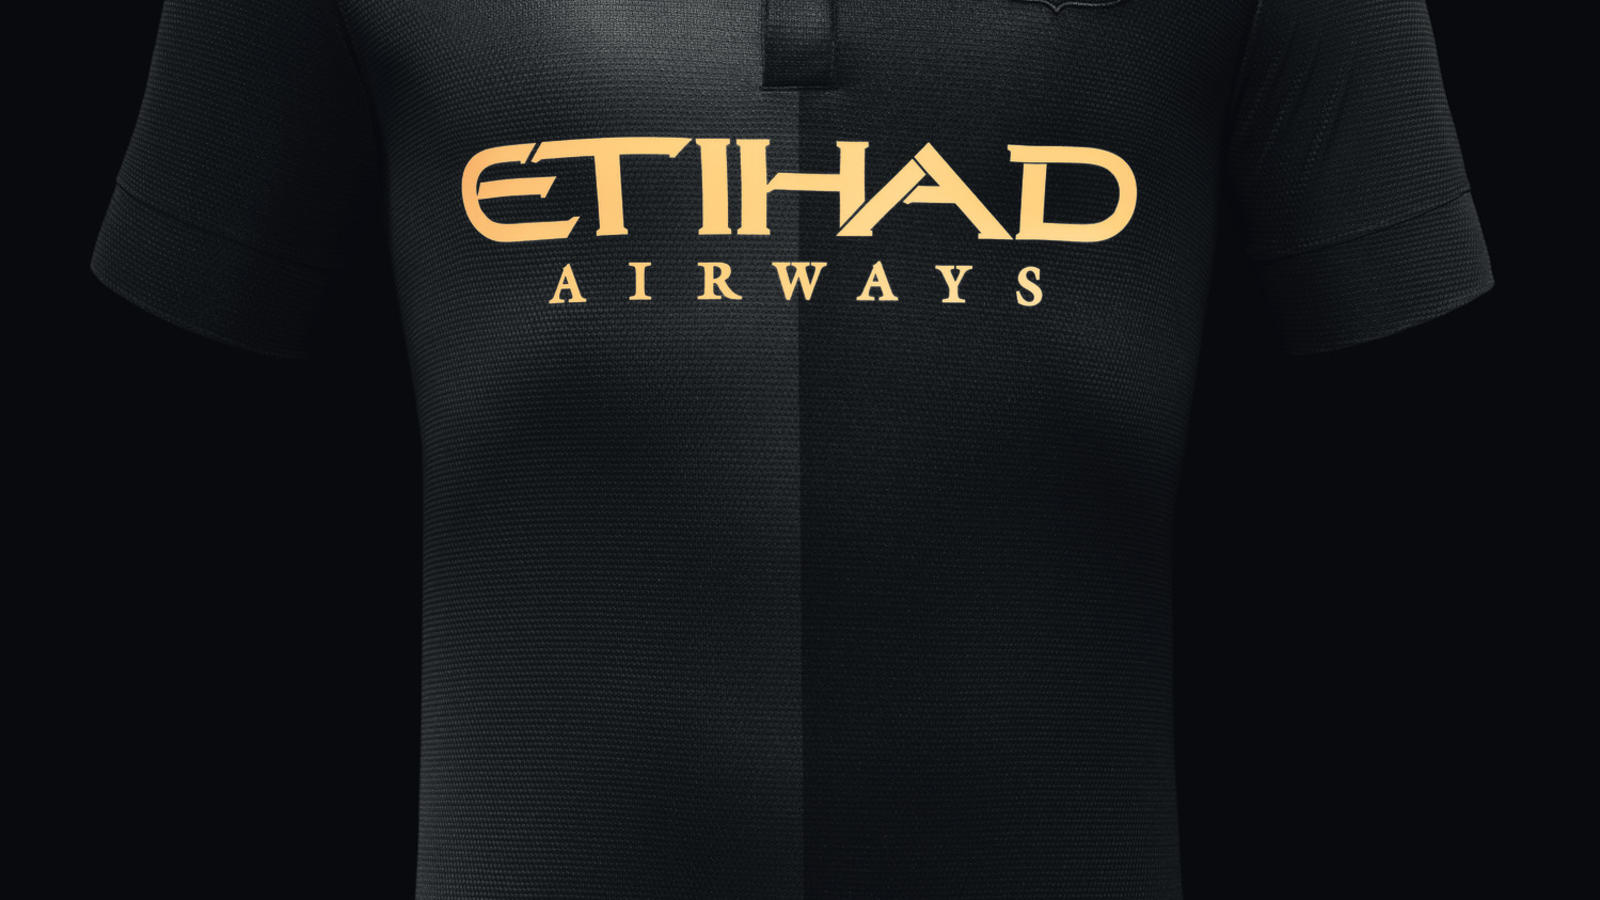 Man City Away Shirt 2013-14